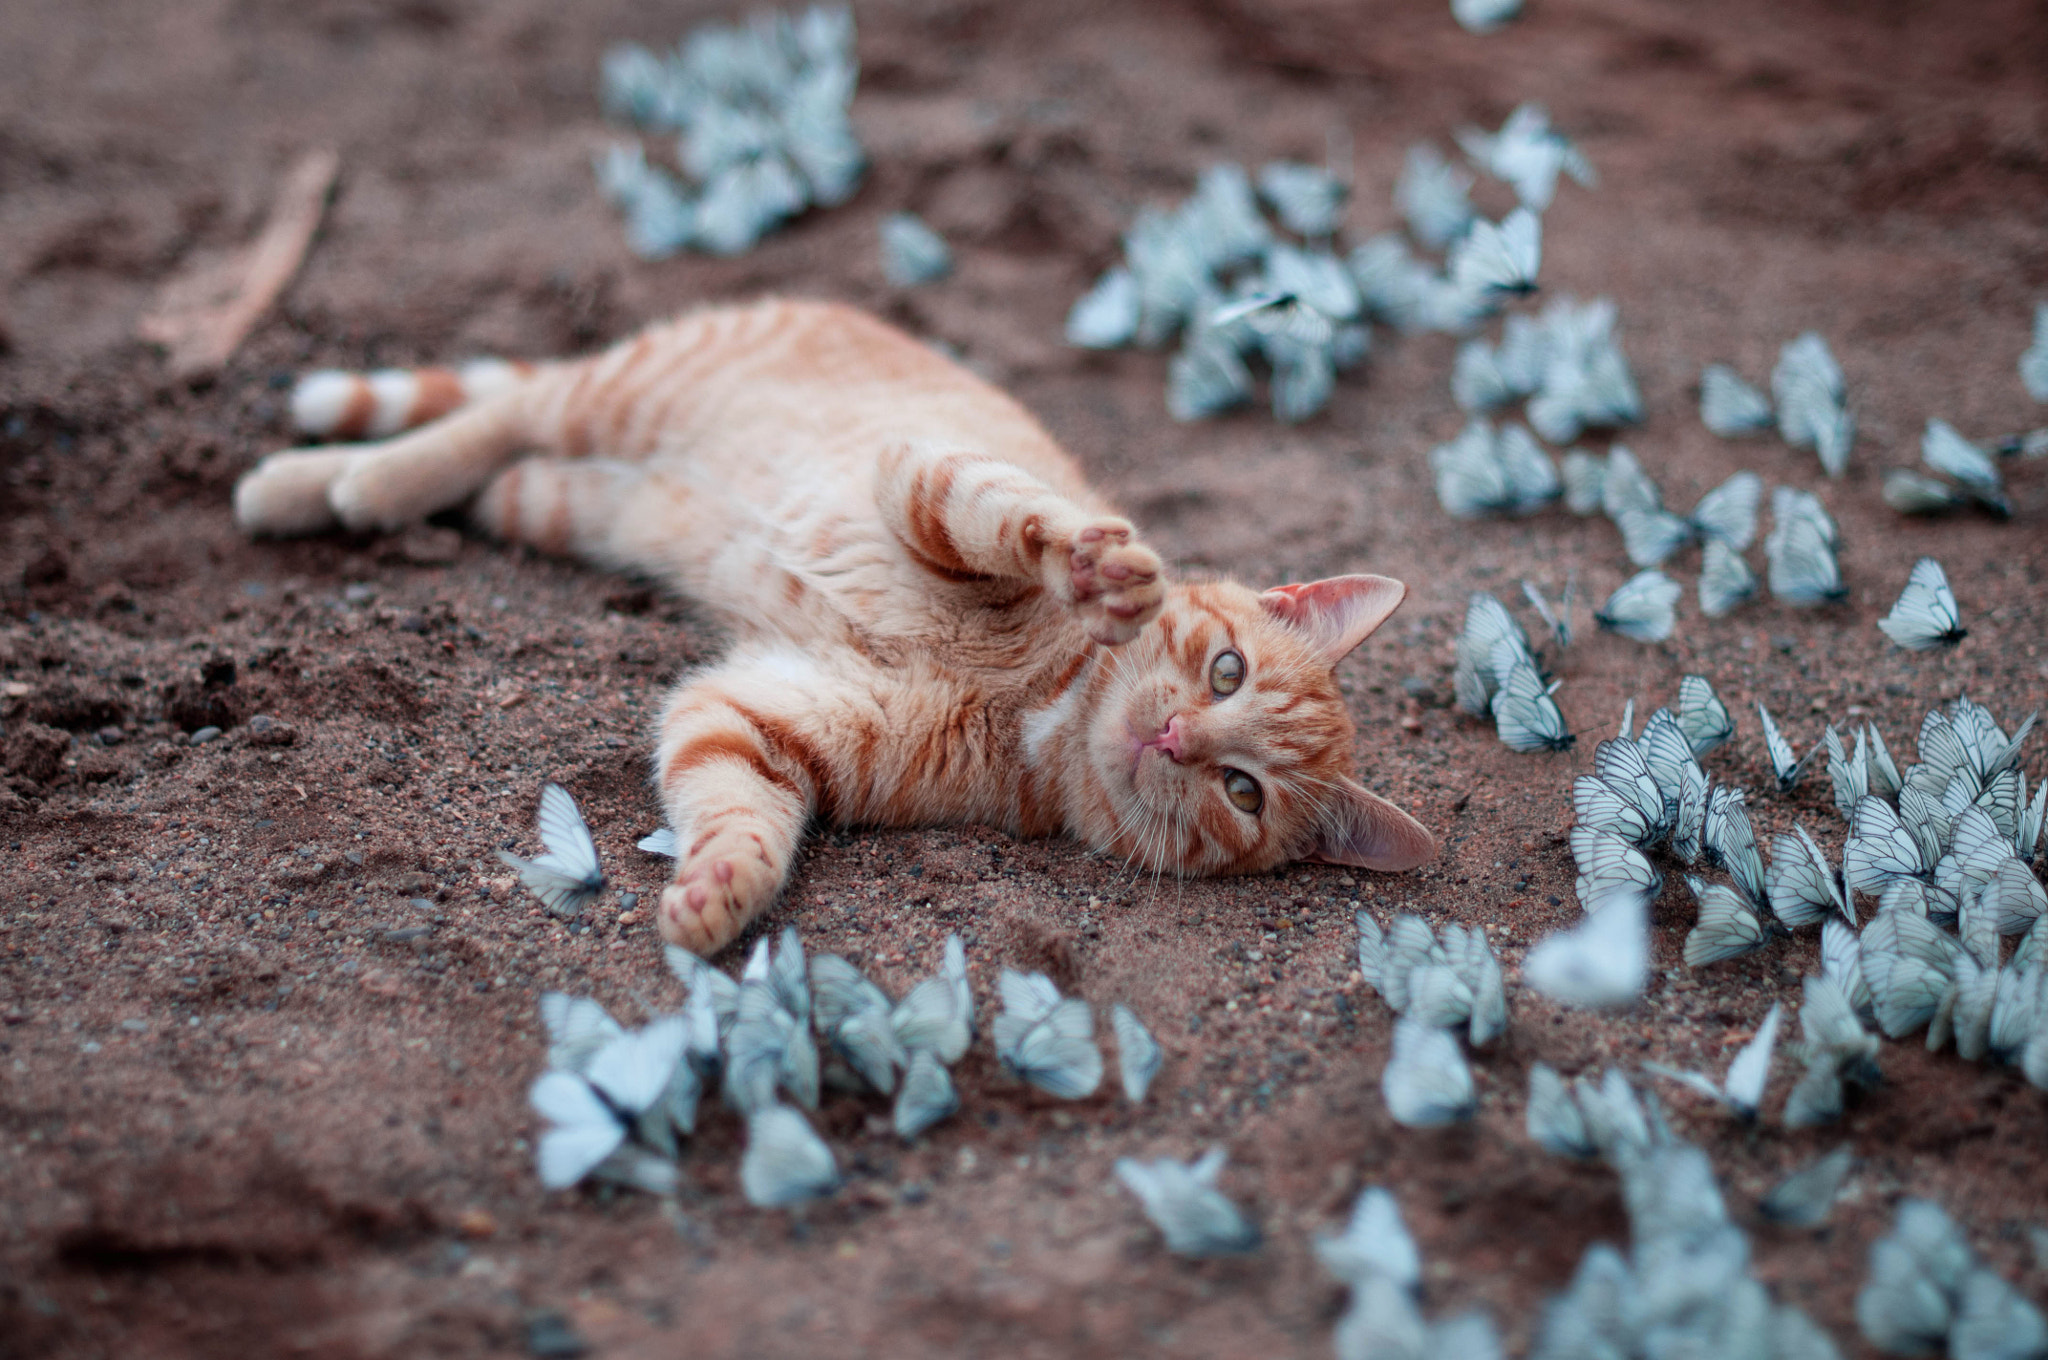 Photograph Cat and Butterflies by Natalia Moldovanova on 500px